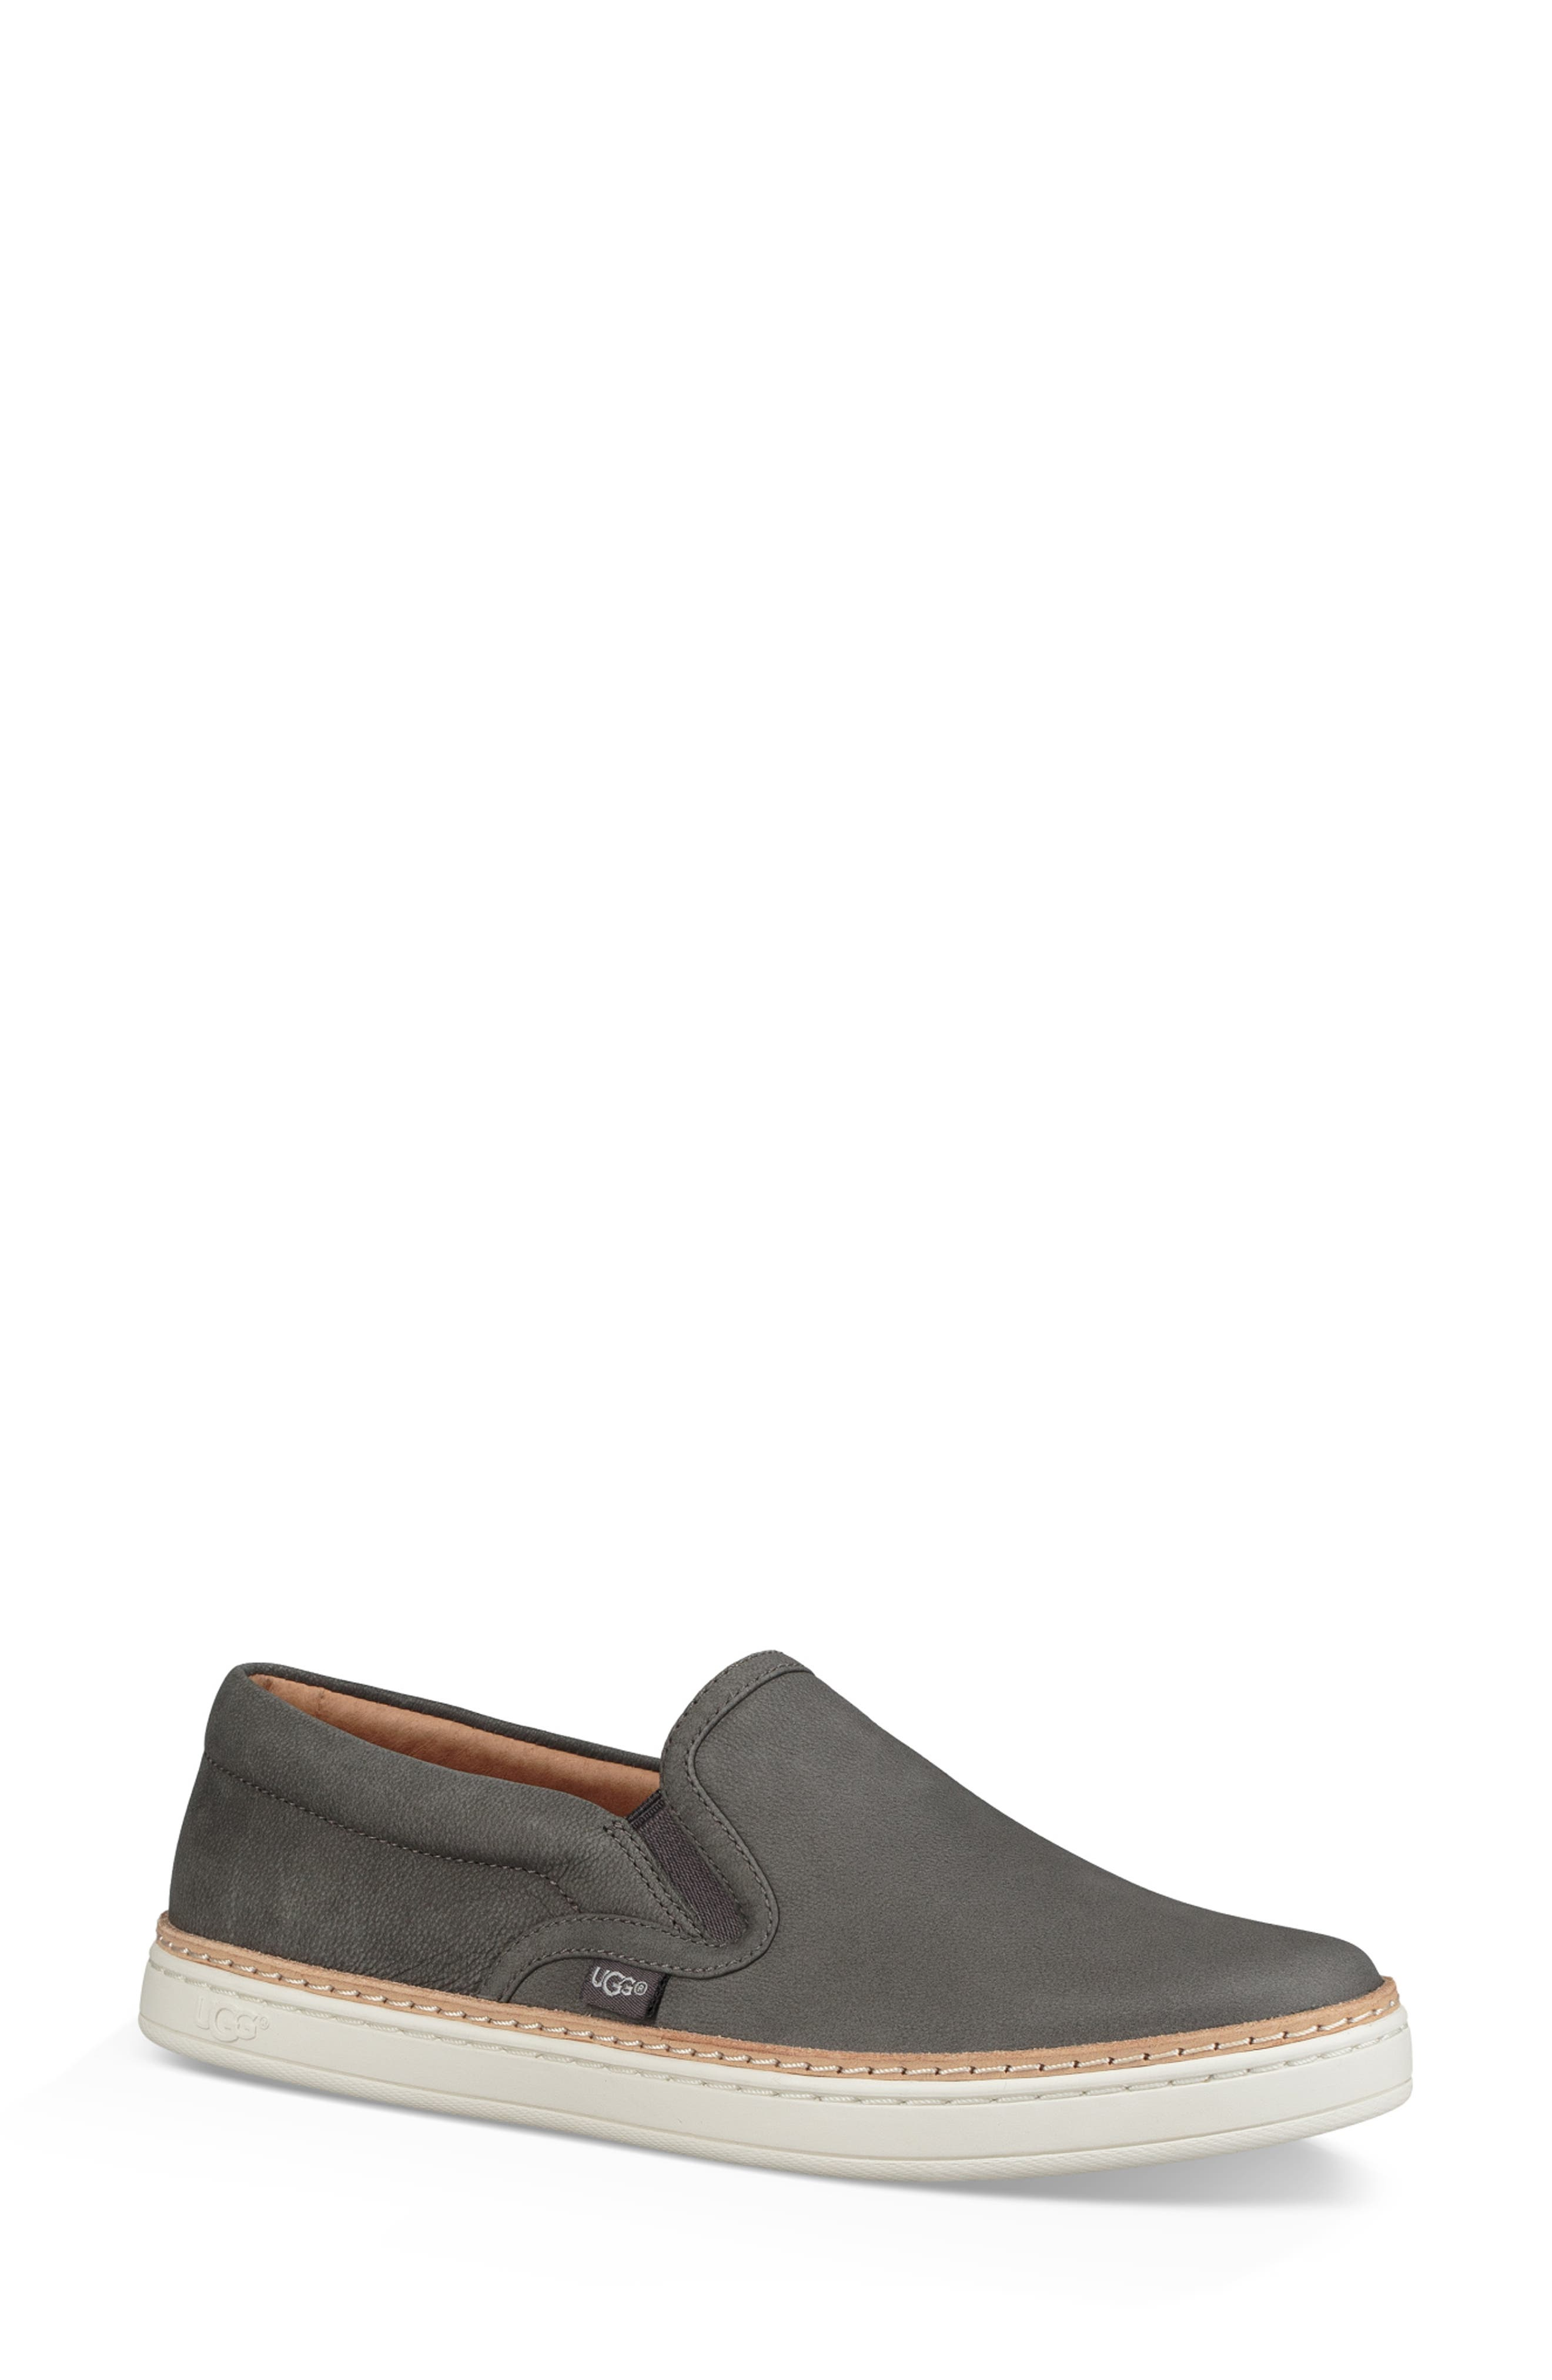 Soleda Slip-On Sneaker,                         Main,                         color, Charcoal Leather